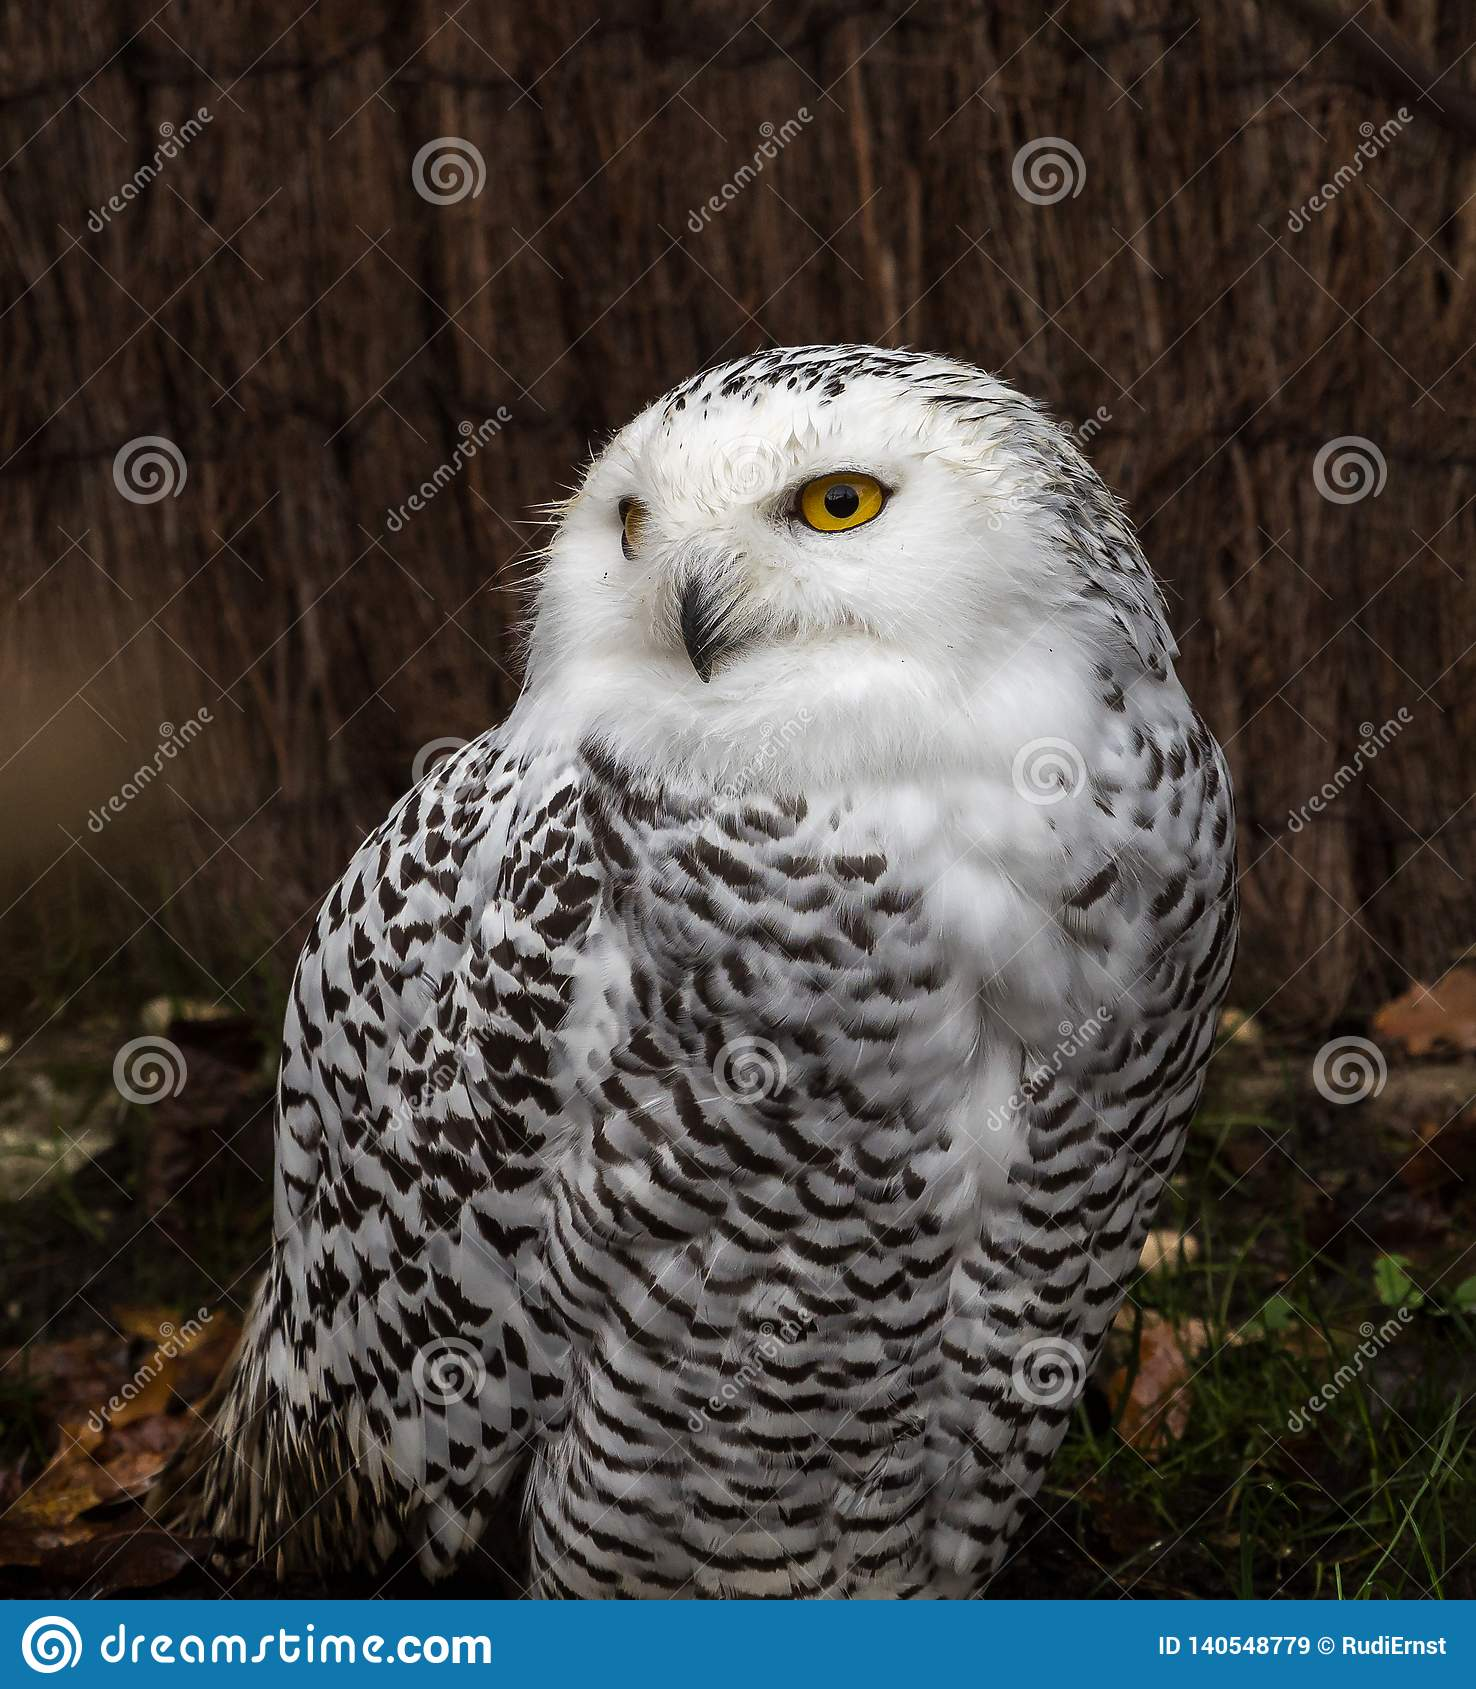 The Snowy Owl, Bubo scandiacus is a large, white owl of the owl family